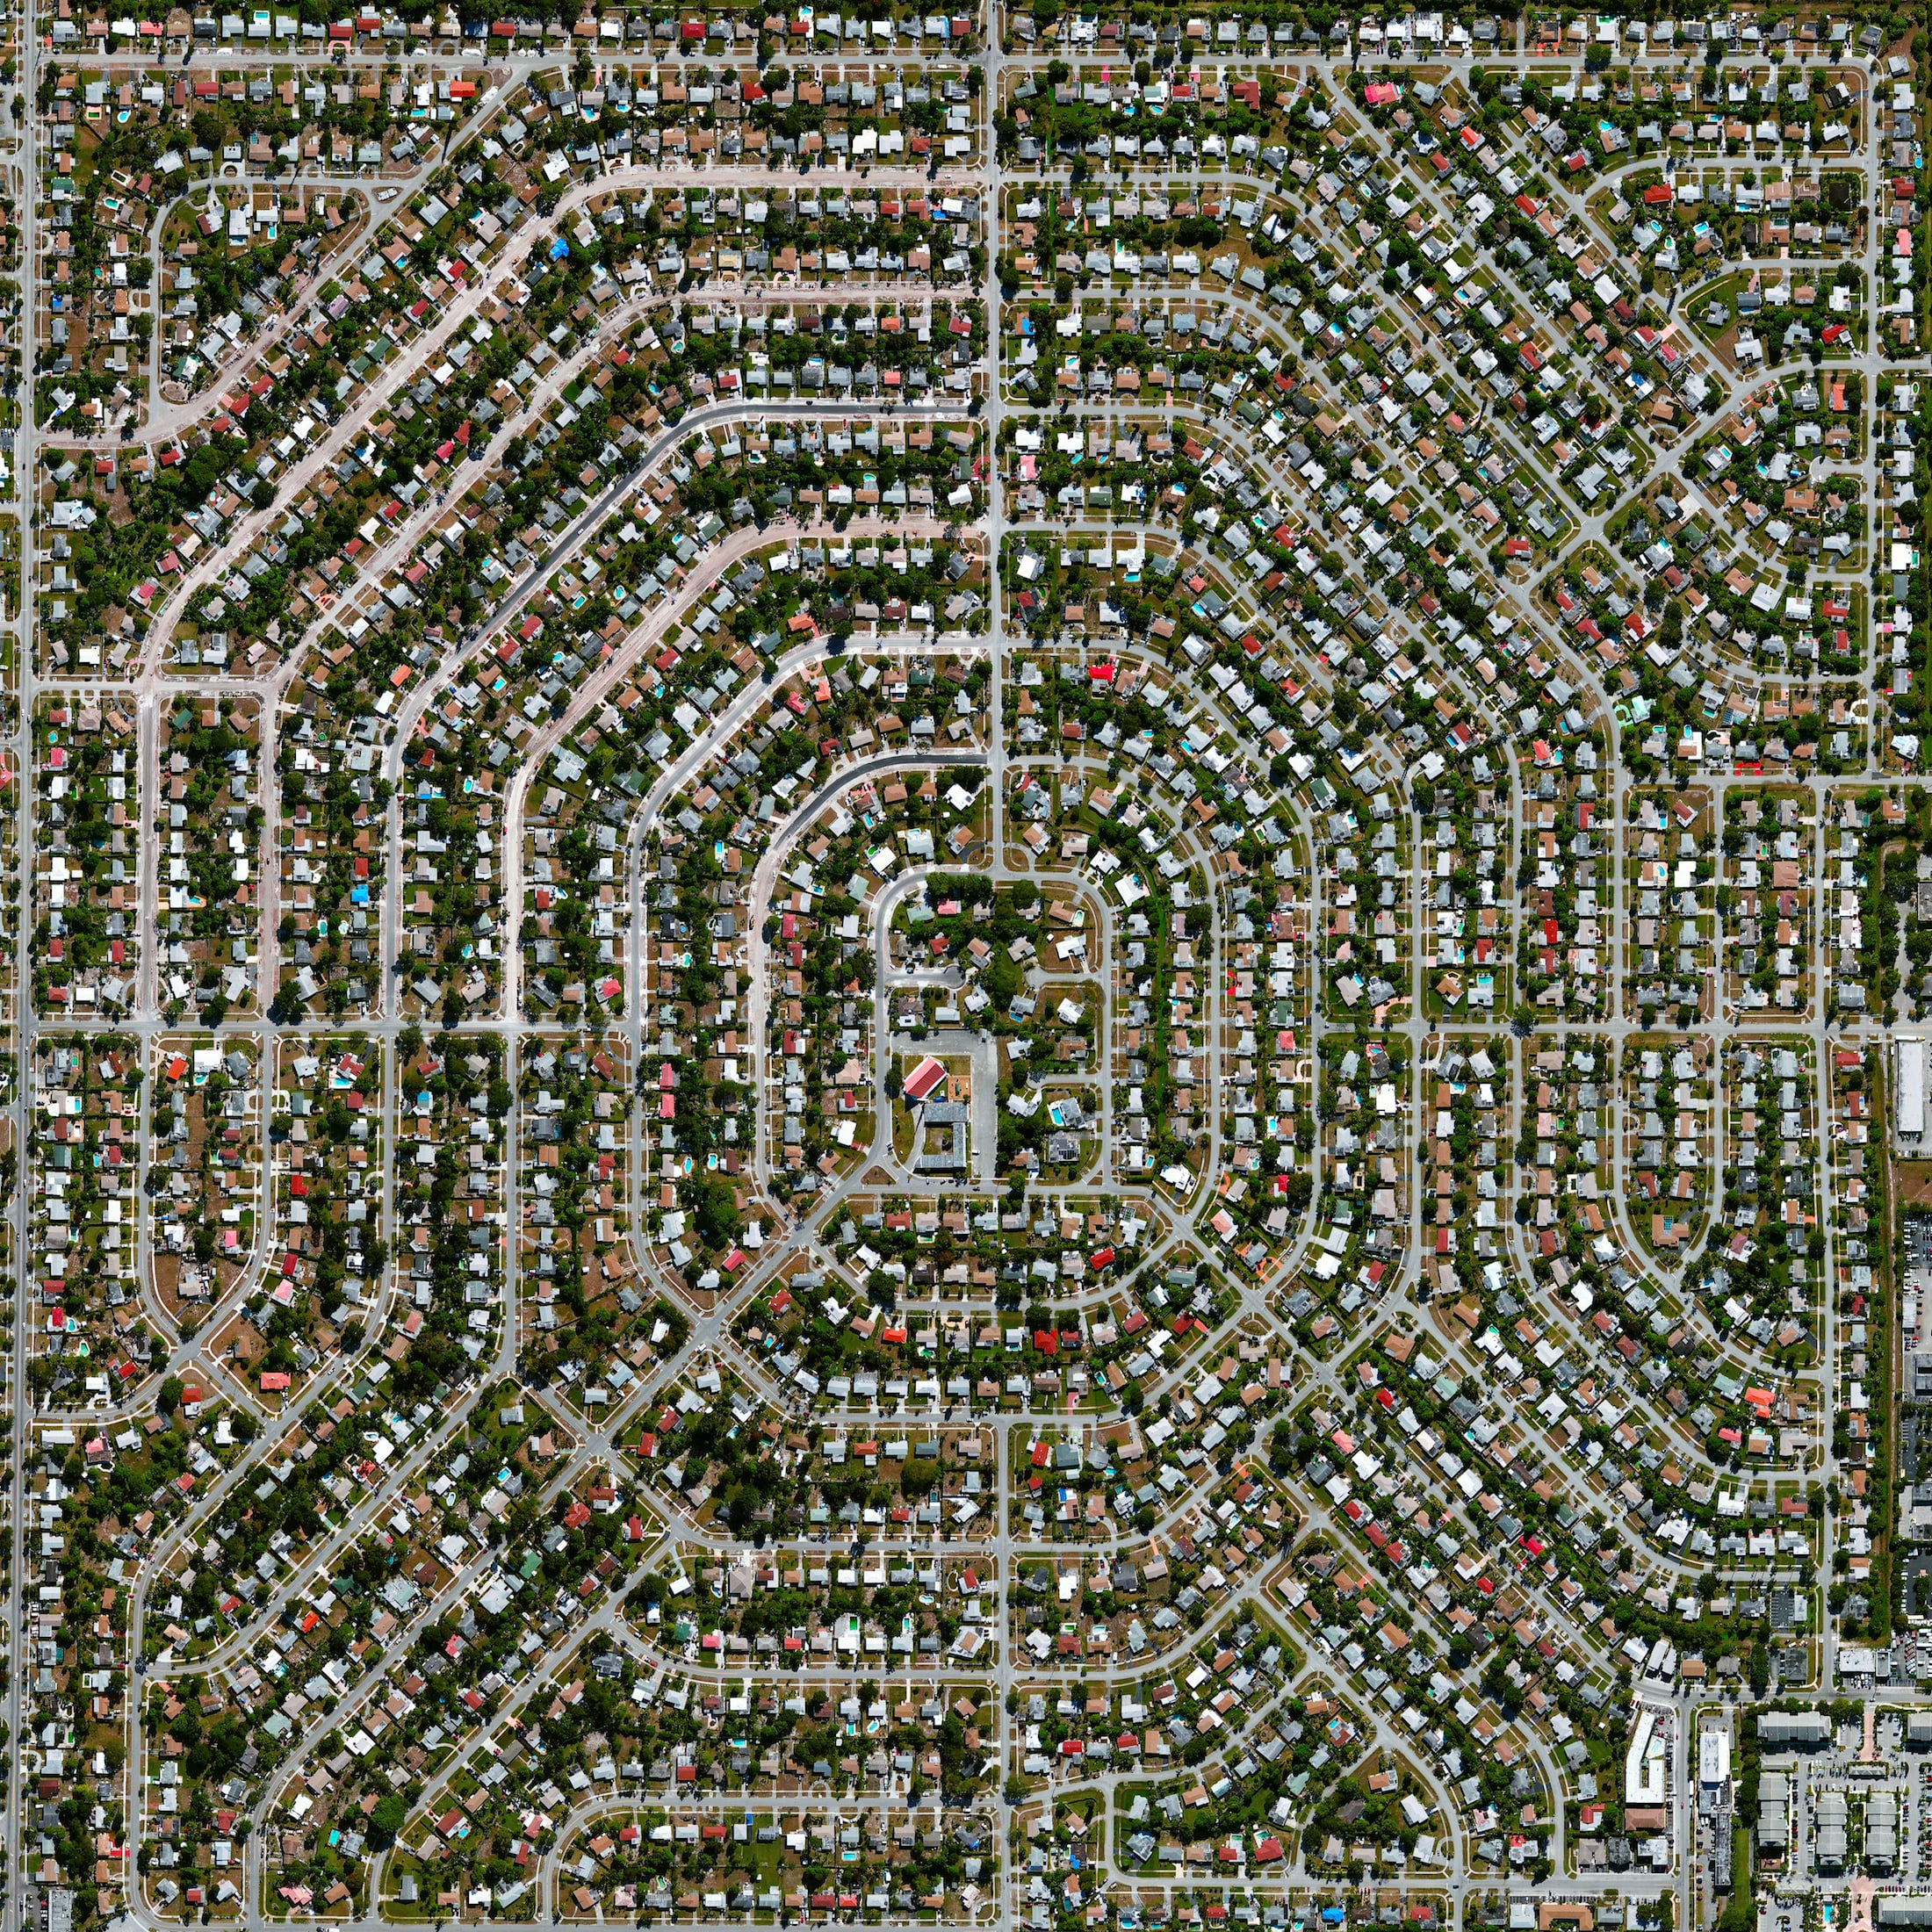 1/14/2016   Melrose Park   Fort Lauderdale, Florida, USA  26.113889, -80.193611    Melrose Park is a residential community in Fort Lauderdale, Florida, USA. The neighborhood is planned with streets in eight concentric octagons and contains 1,975 households.